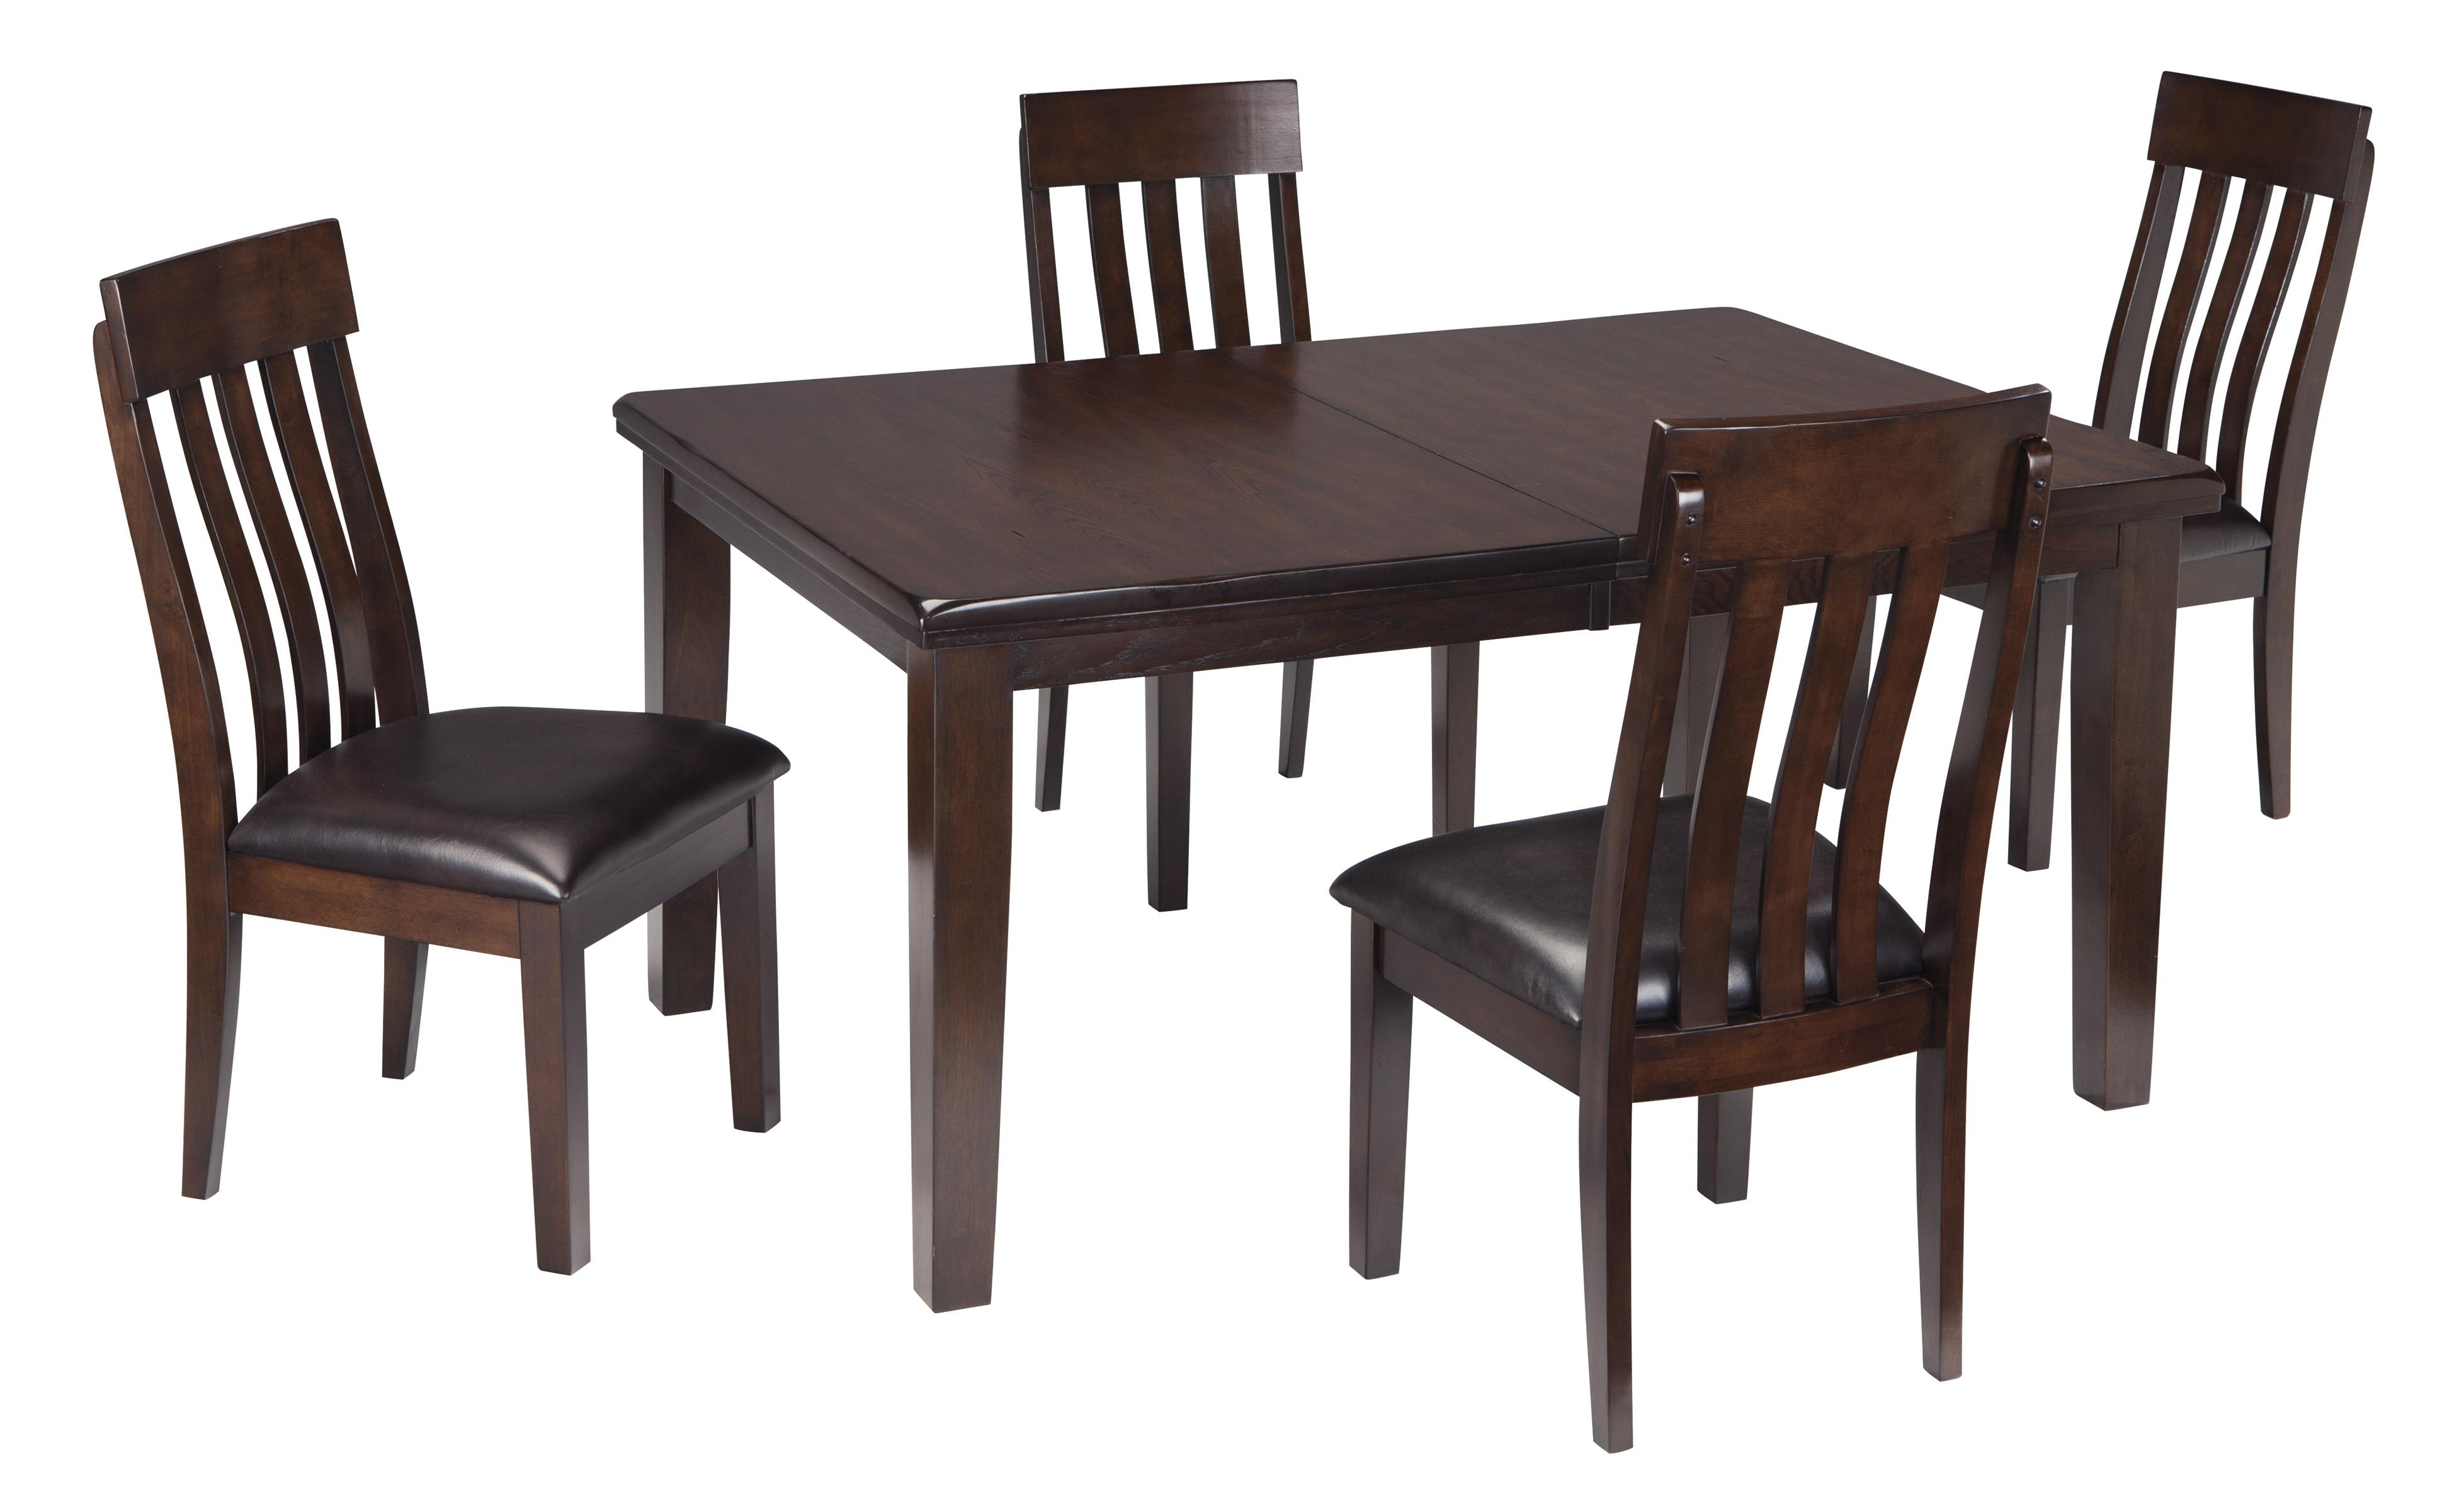 Haddigan 5-Piece Dining Room Table & Side Chair Set by Signature Design by Ashley at Beck's Furniture